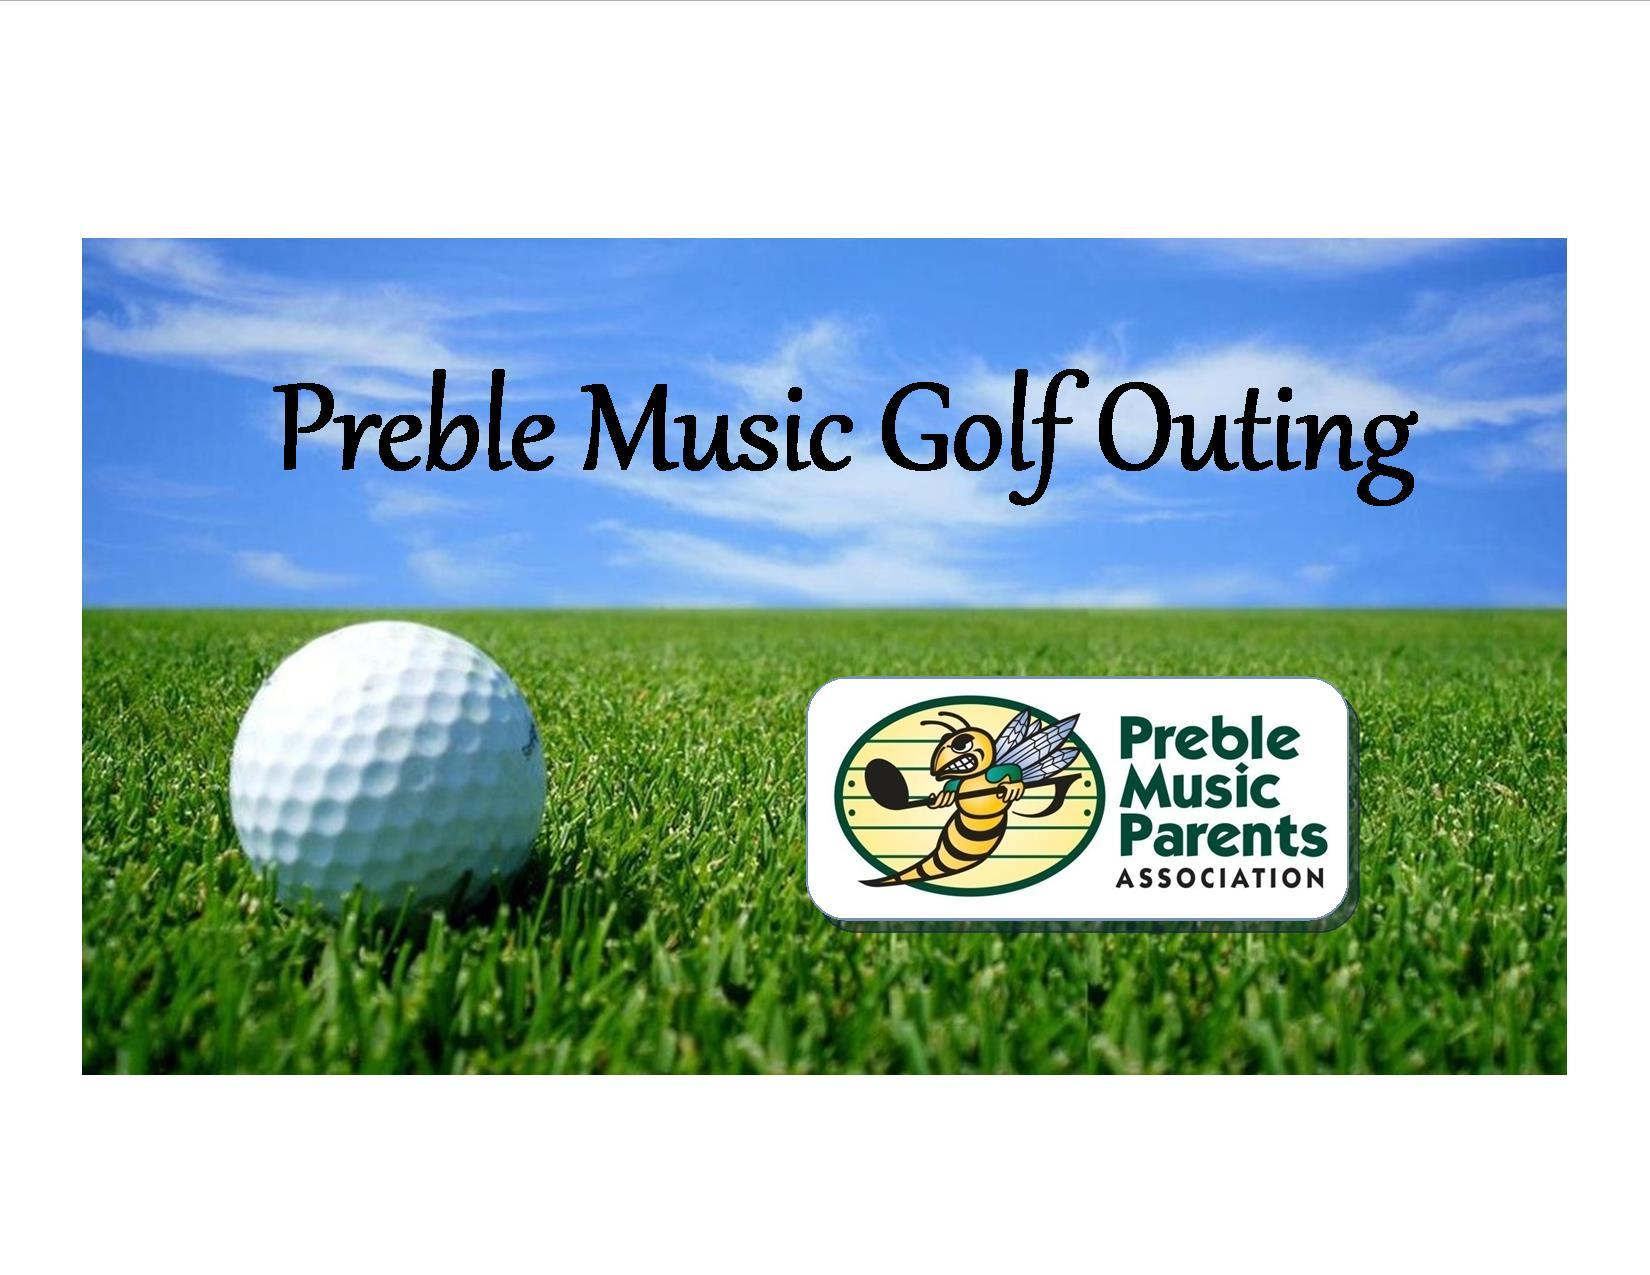 Preble Music Golf Outing